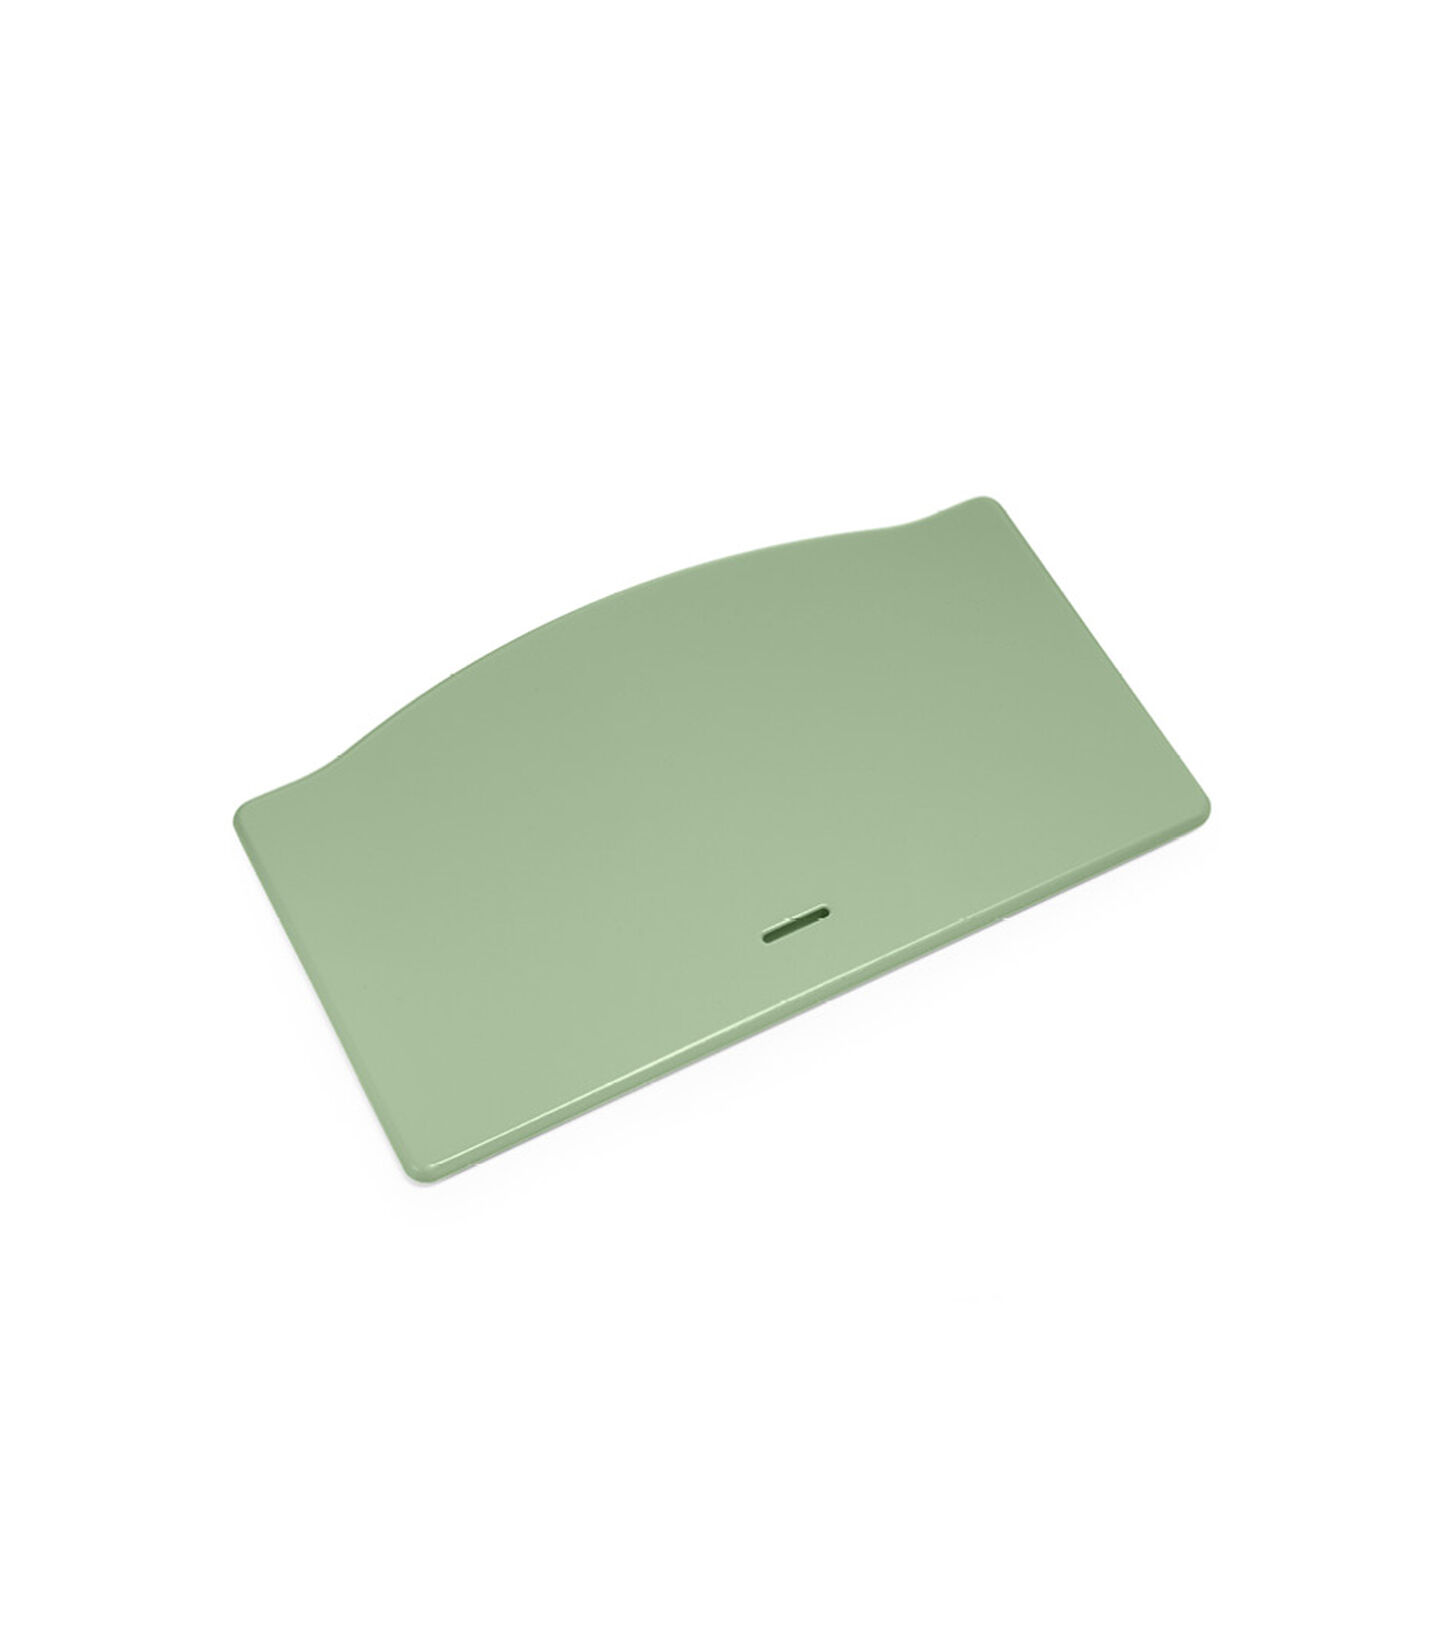 Tripp Trapp® Seatplate Moss Green, Verde Muschio, mainview view 2